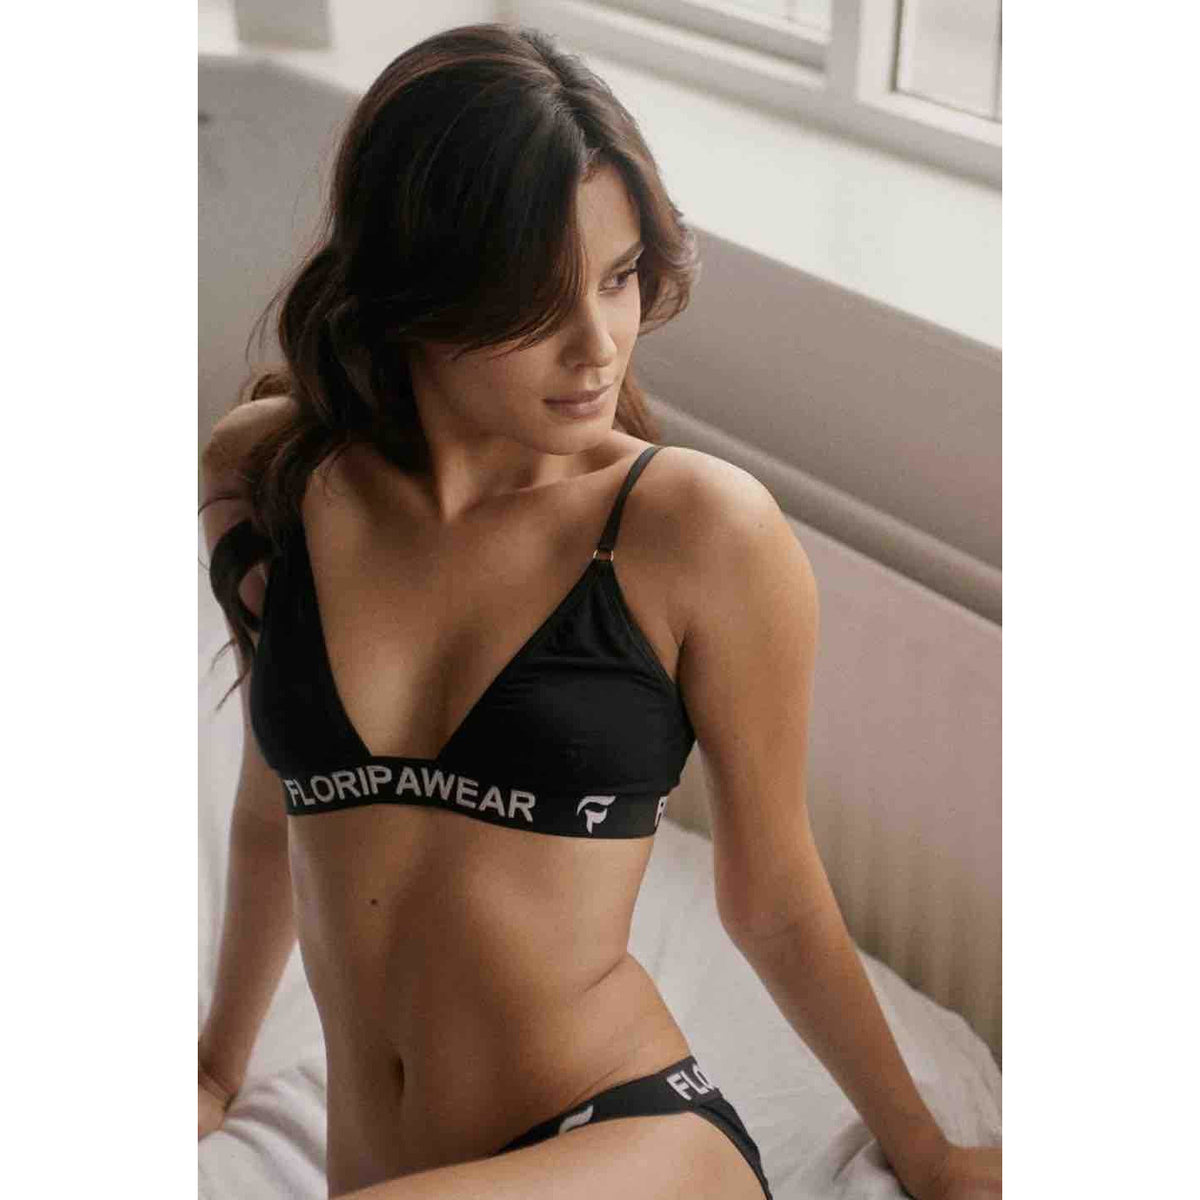 Ethical underwear UK made Black Noite bra and thong set